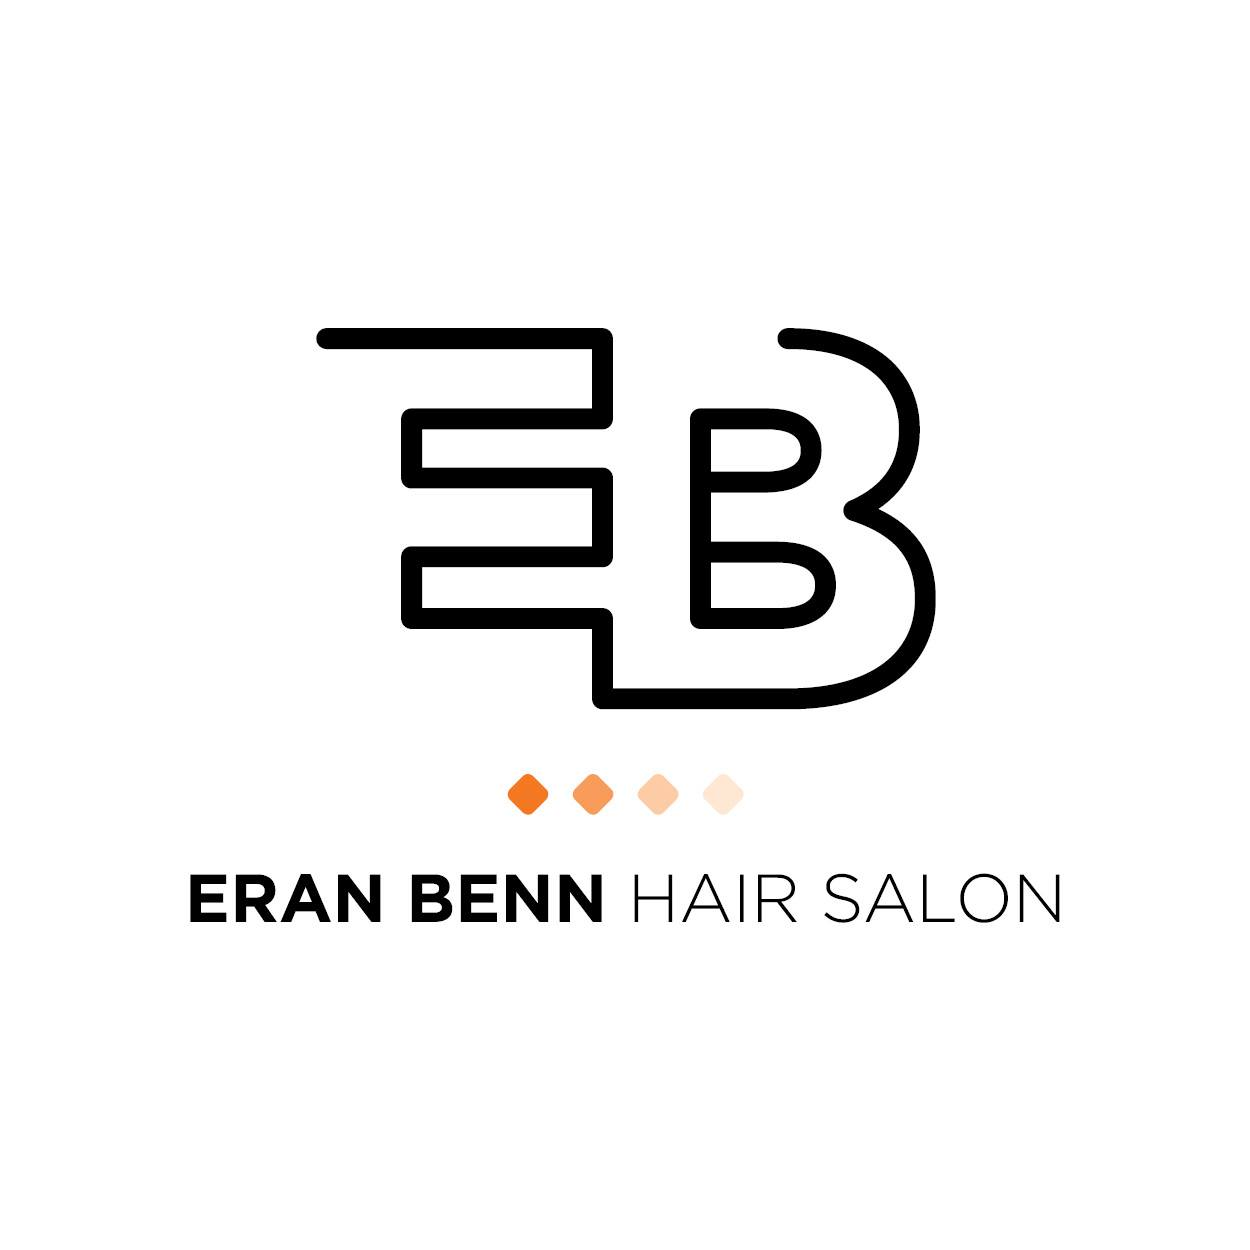 ERAN BENN HAIR SALON